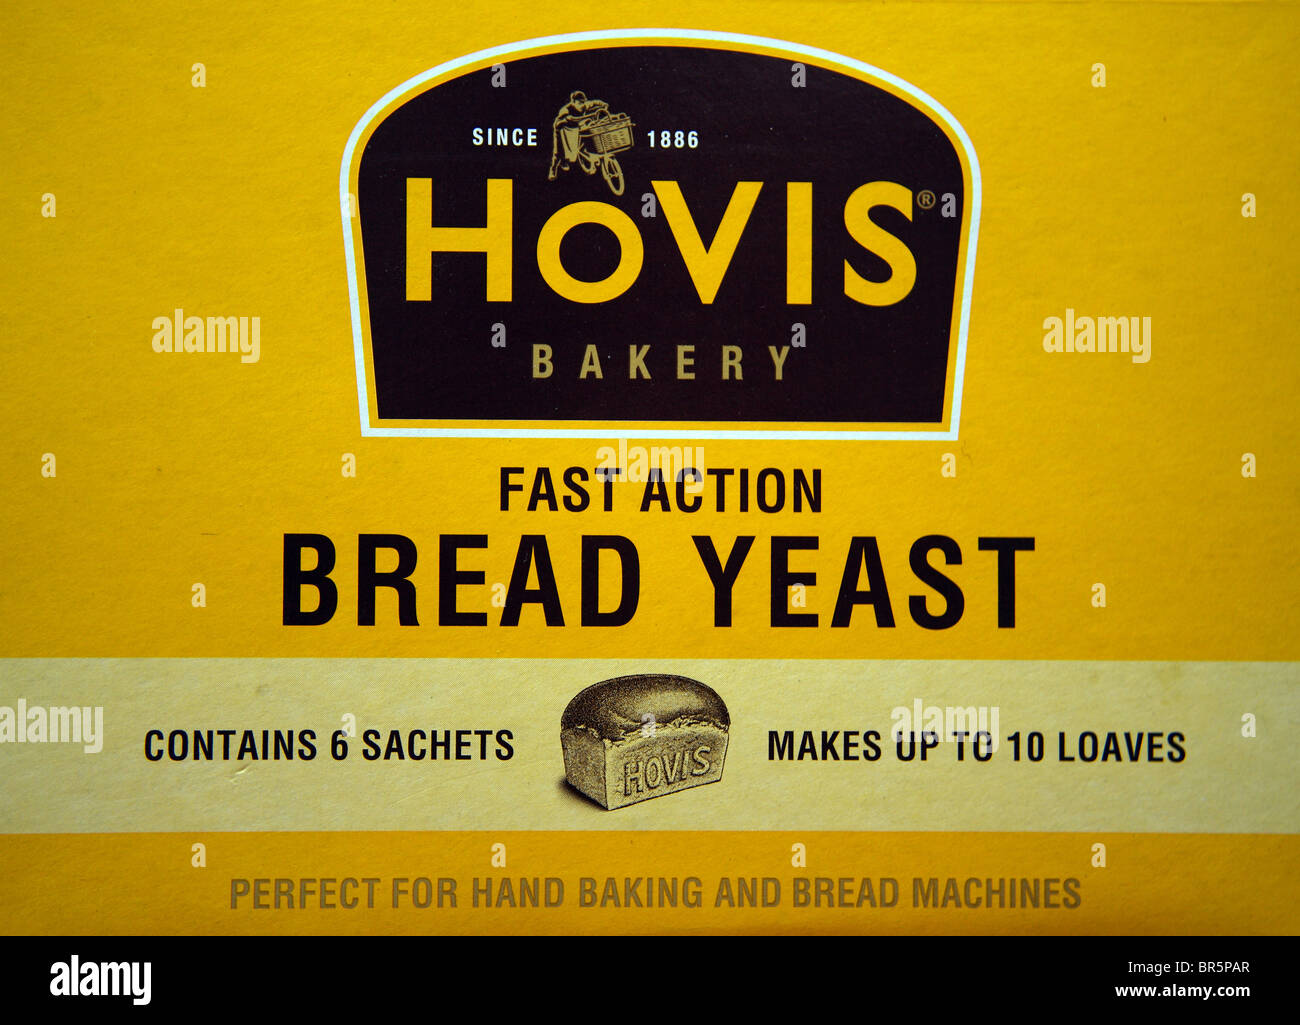 A close up product shot of Hovis bakery fast action bread yeast for hand baking and bread machines. Stock Photo